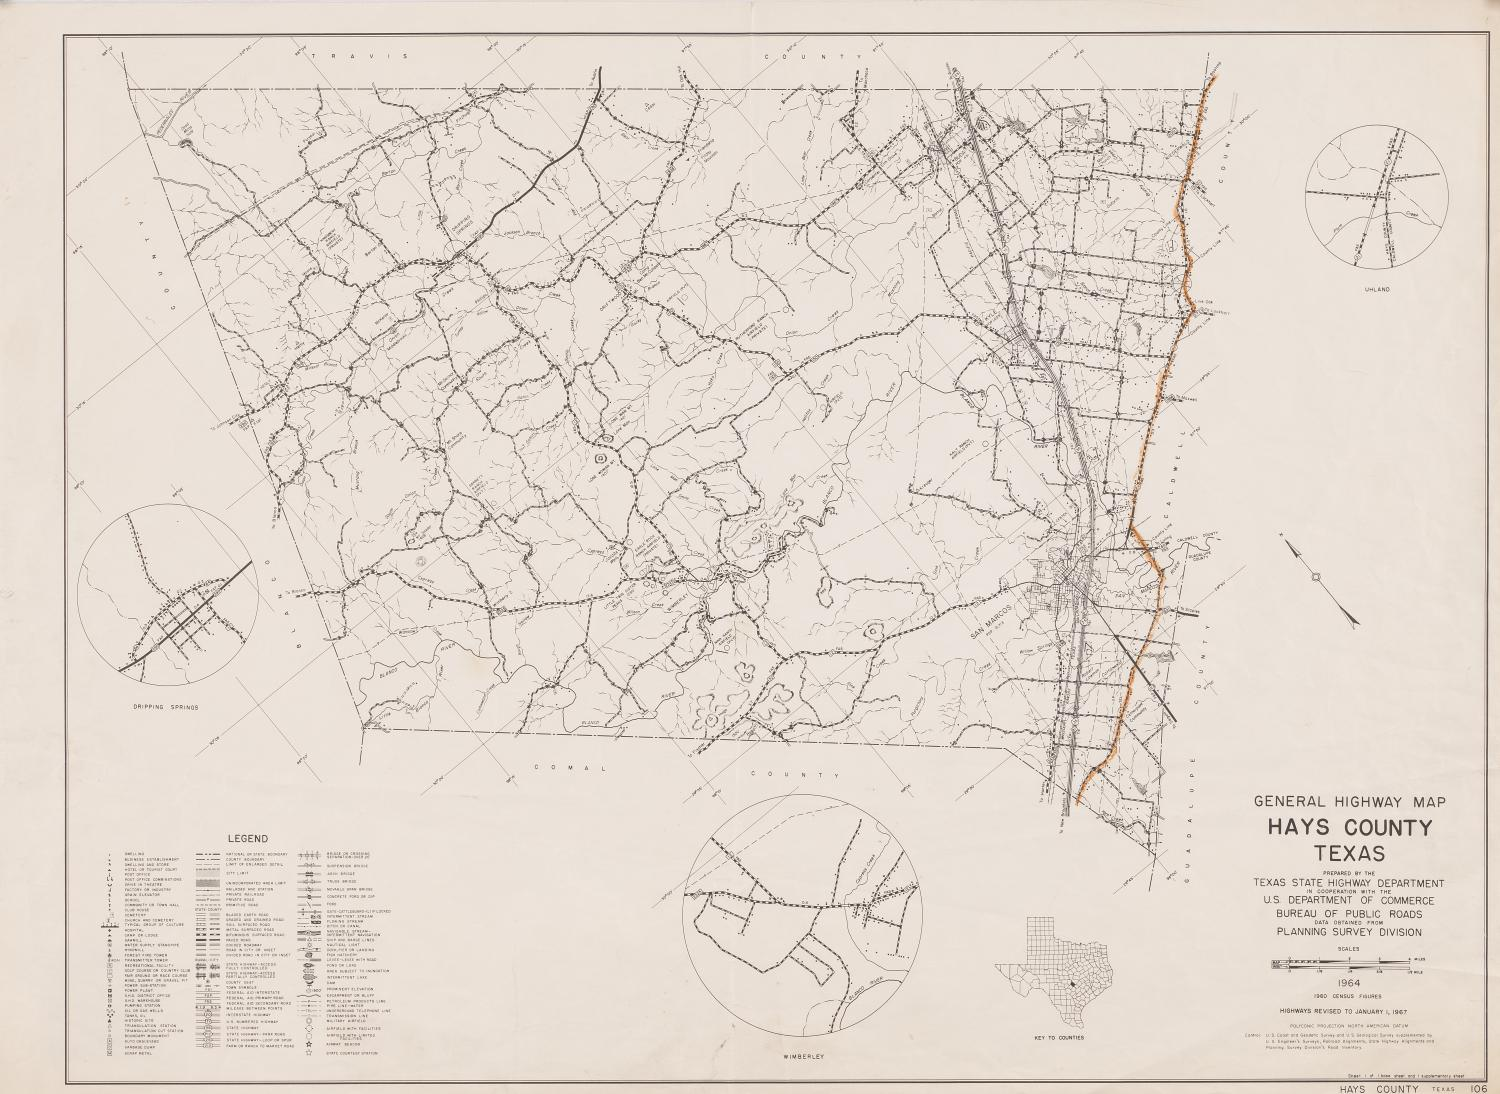 General Highway Map Hays County, Texas - The Portal to Texas History